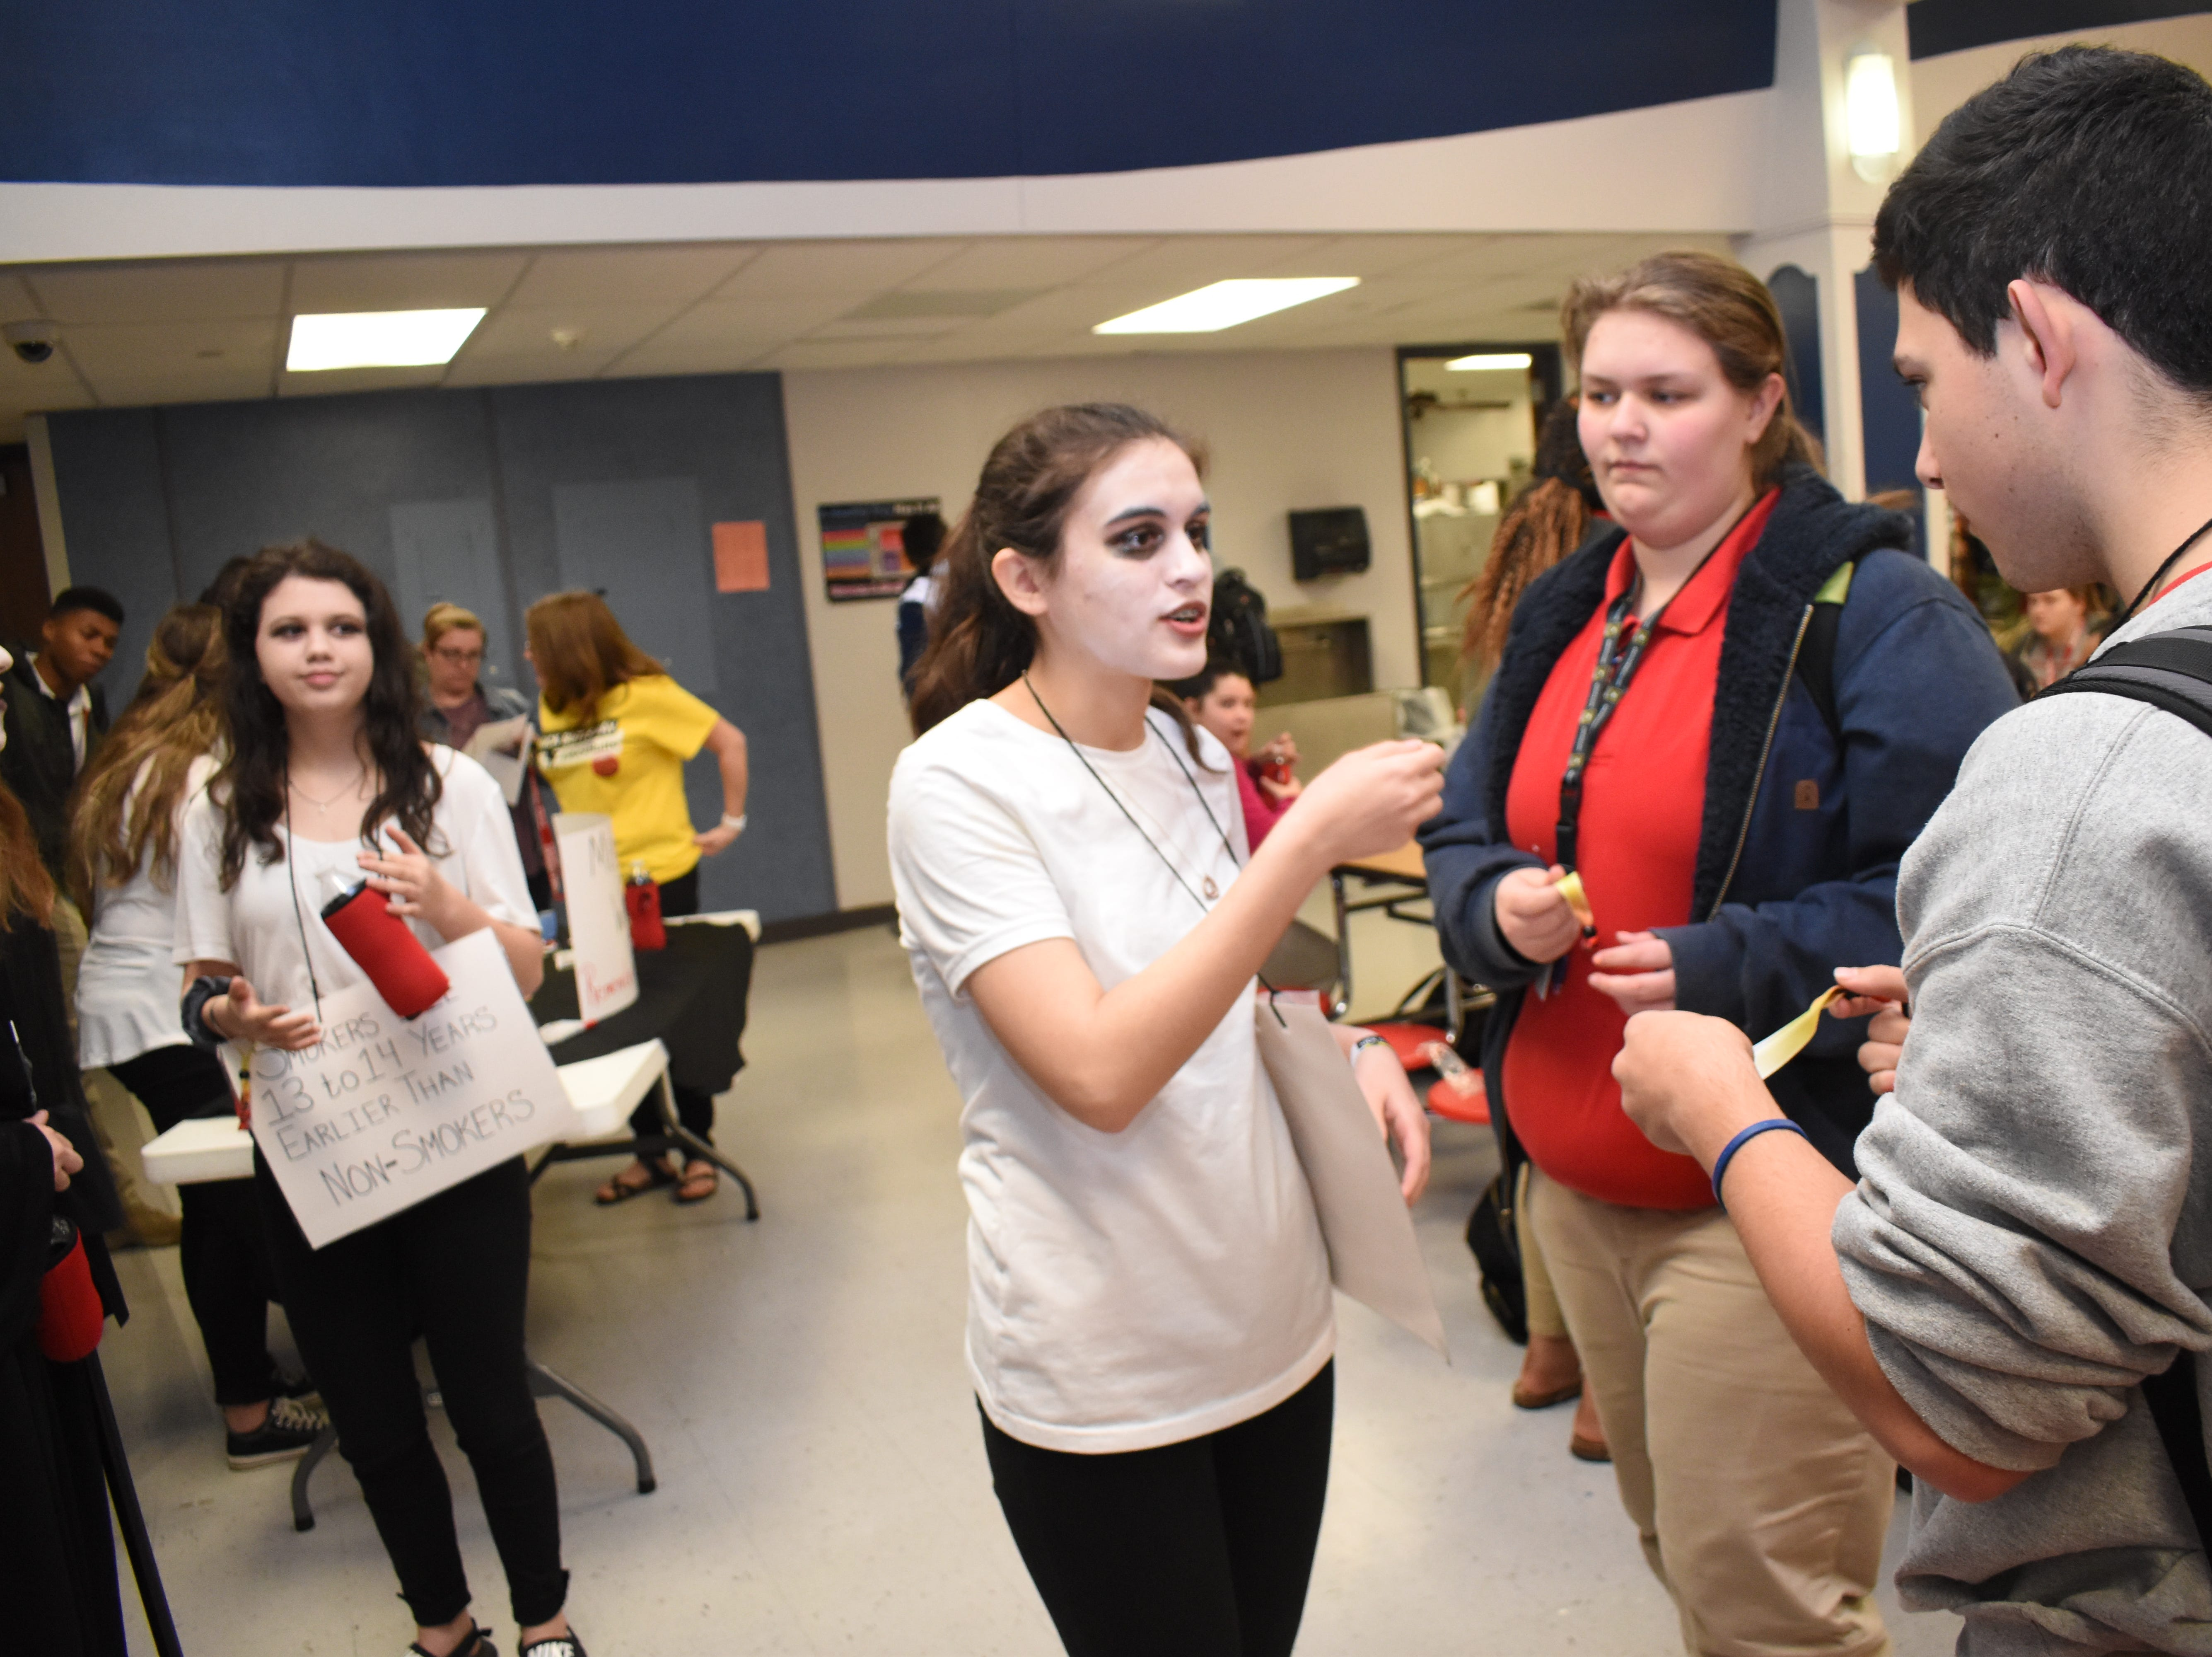 """Members of the Tioga High School Living Healthy Club erected a memorial wall where students could add the name of someone they knew who died from tobacco use. Tioga High School was one of 53 schools in Central Louisiana participating in Kick Butts Day with funding from the Healthy Behaviors School District Partnership Grant from The Rapides Foundation. Kick Butts Day is recognized nationally by young people to raise awareness against the use of tobacco products. A press release from The Rapides Foundation states, """"The Healthy Behaviors School District Partnership Grant seeks to prevent and reduce tobacco use, substance and alcohol abuse, and overweight/obesity by focusing on changing policy, social norms and environments. Grant activities are based on best and promising practices to create comprehensive school- and community-based awareness and prevention programs in order to positively impact Central Louisiana students, educators and staff. The goal is to provide the knowledge and skills necessary to make better and informed behavior decisions leading to healthier lives."""""""